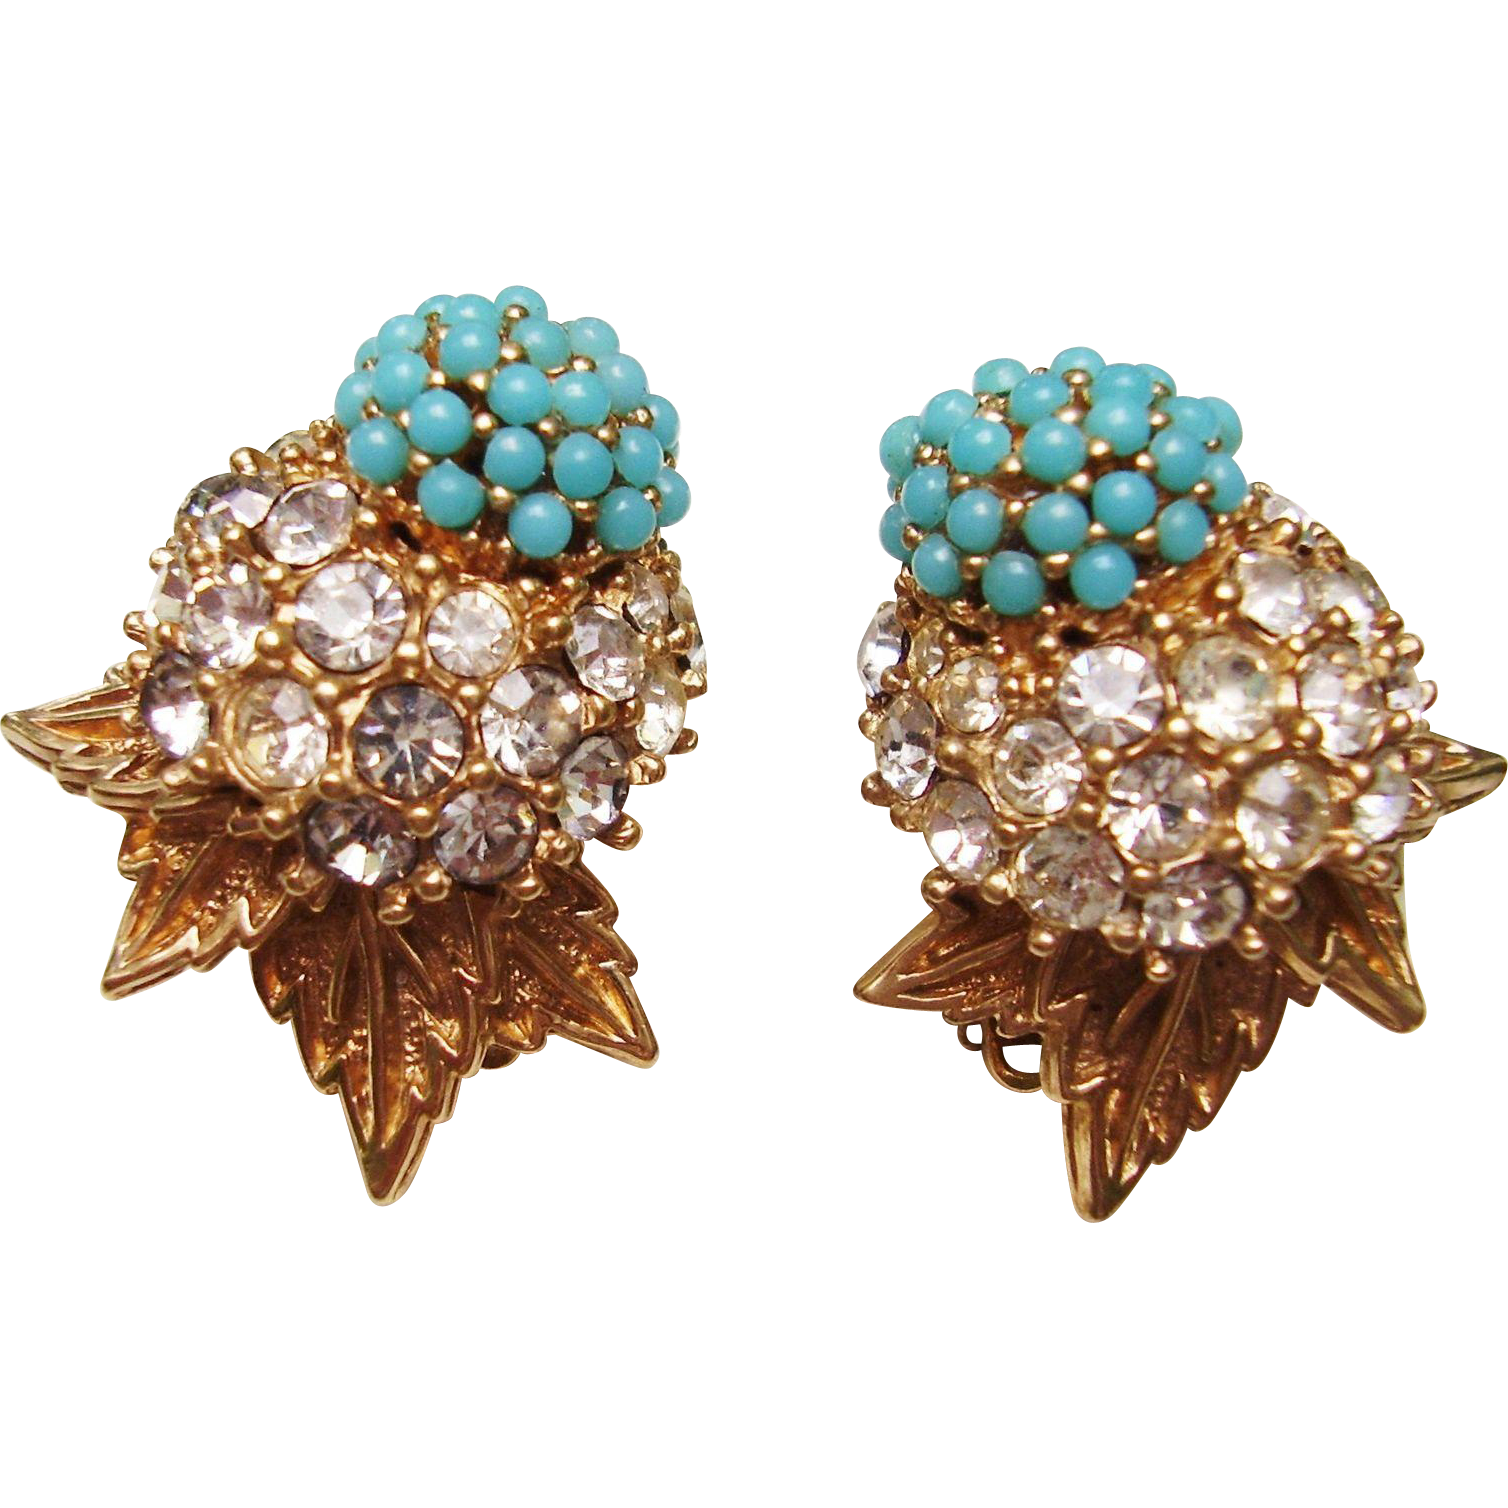 Ciner Earrings - Vintage Clip Earrings Faux Turquoise & Rhinestone Dome Floral & Leaf Design